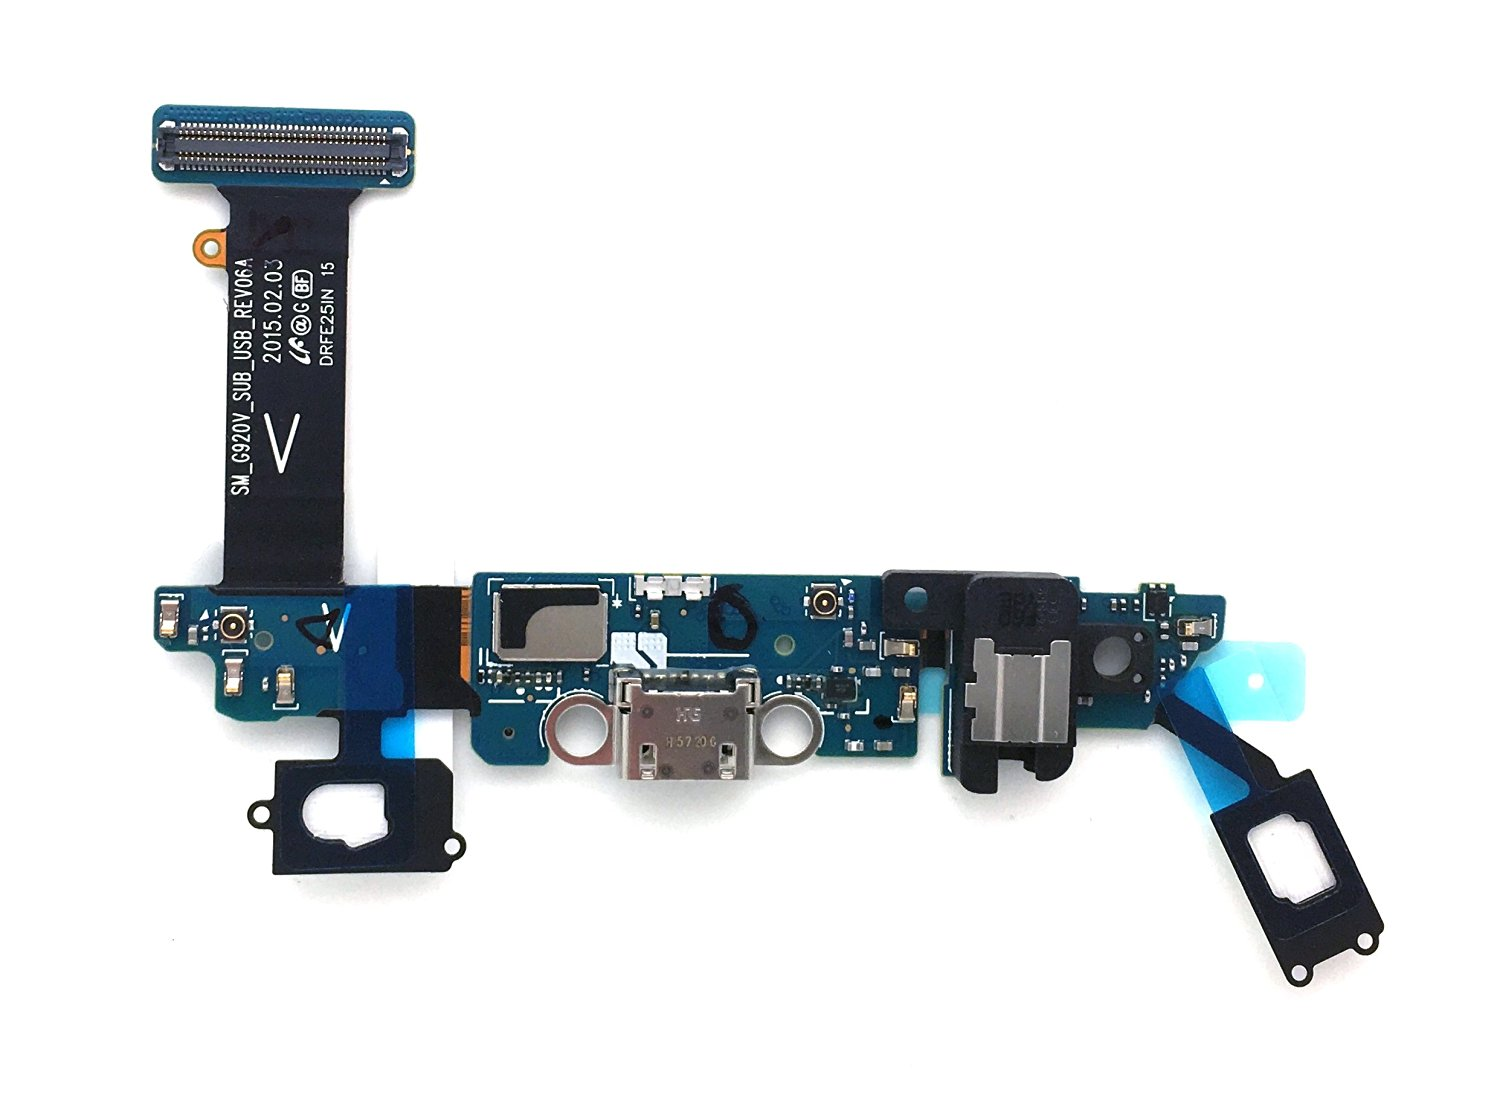 SBOS® Samsung Galaxy S6 G920V Verizon Charging Port Flex Cable Dock Connector USB Port With Mic Microphone Flex Cable Repair Part G920V